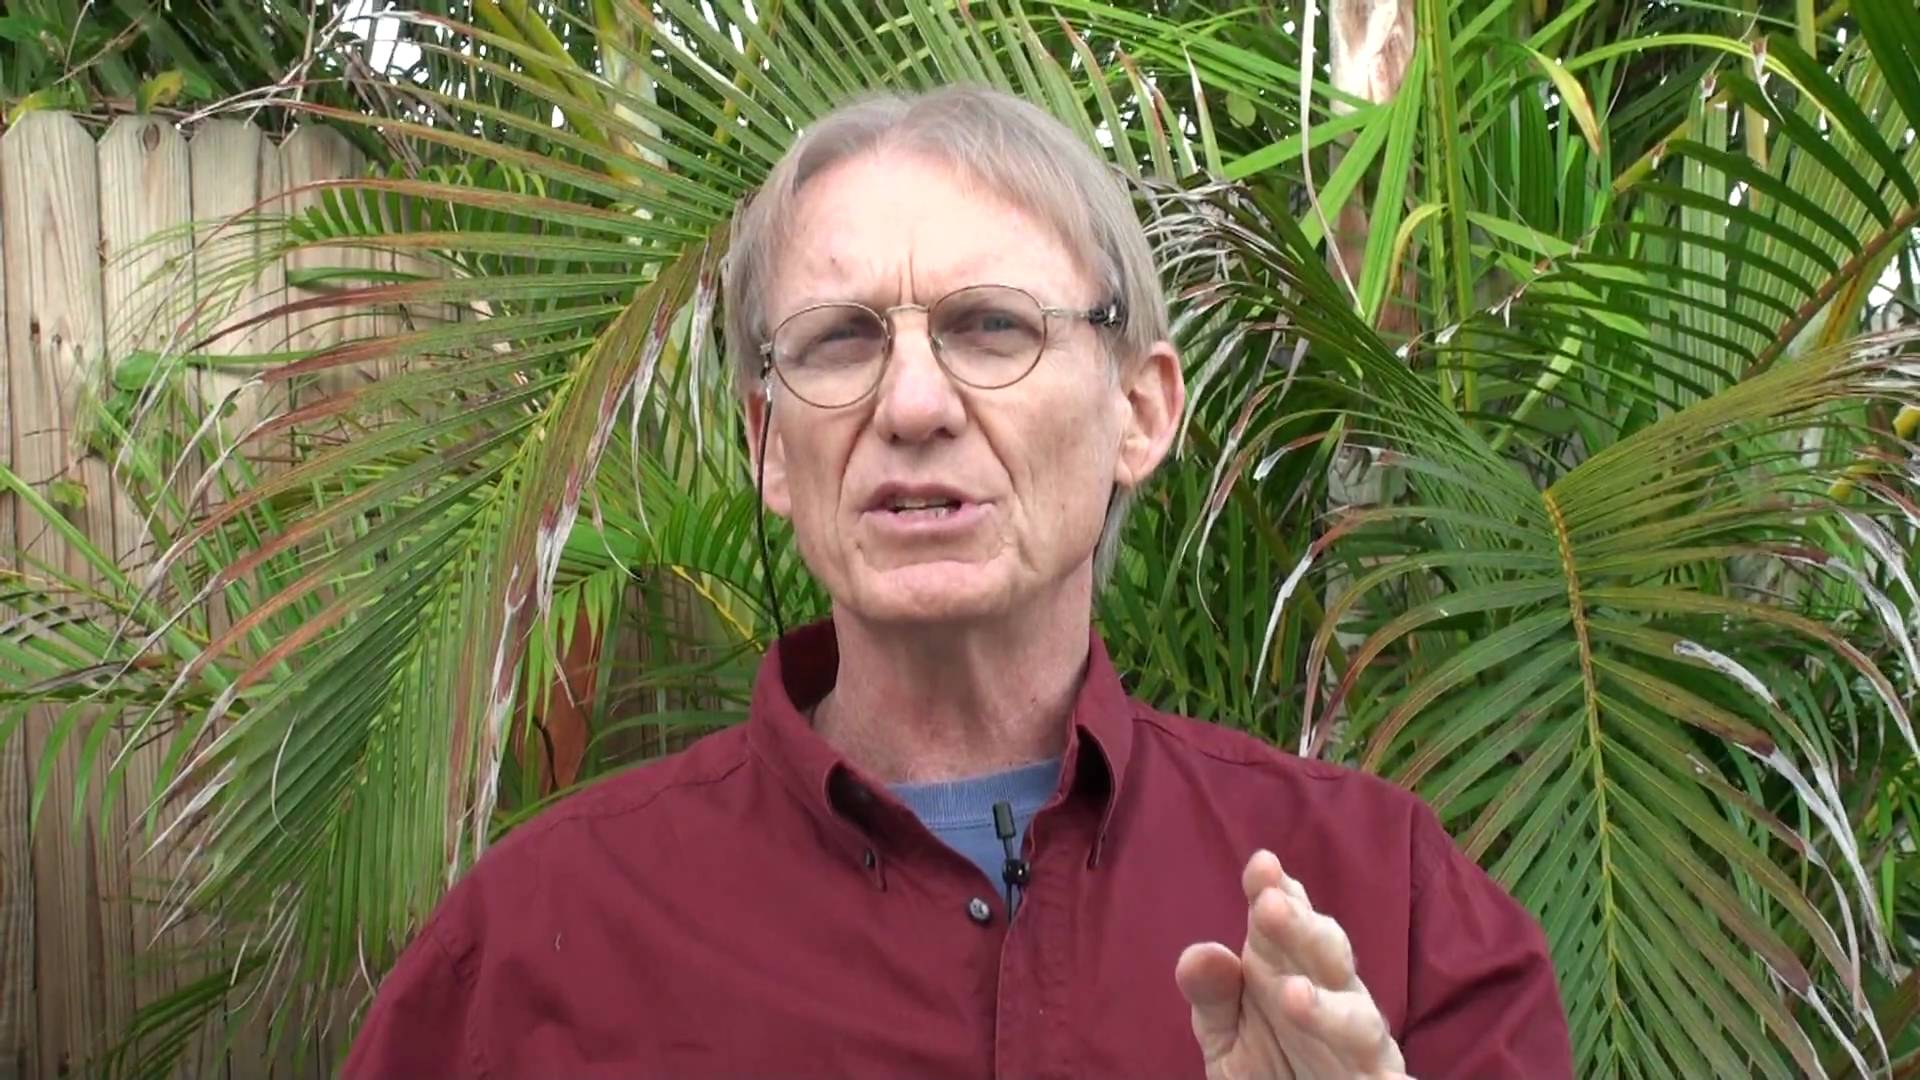 Biodynamic CranioSacral Therapy Part 1 with Dr. Michael Shea